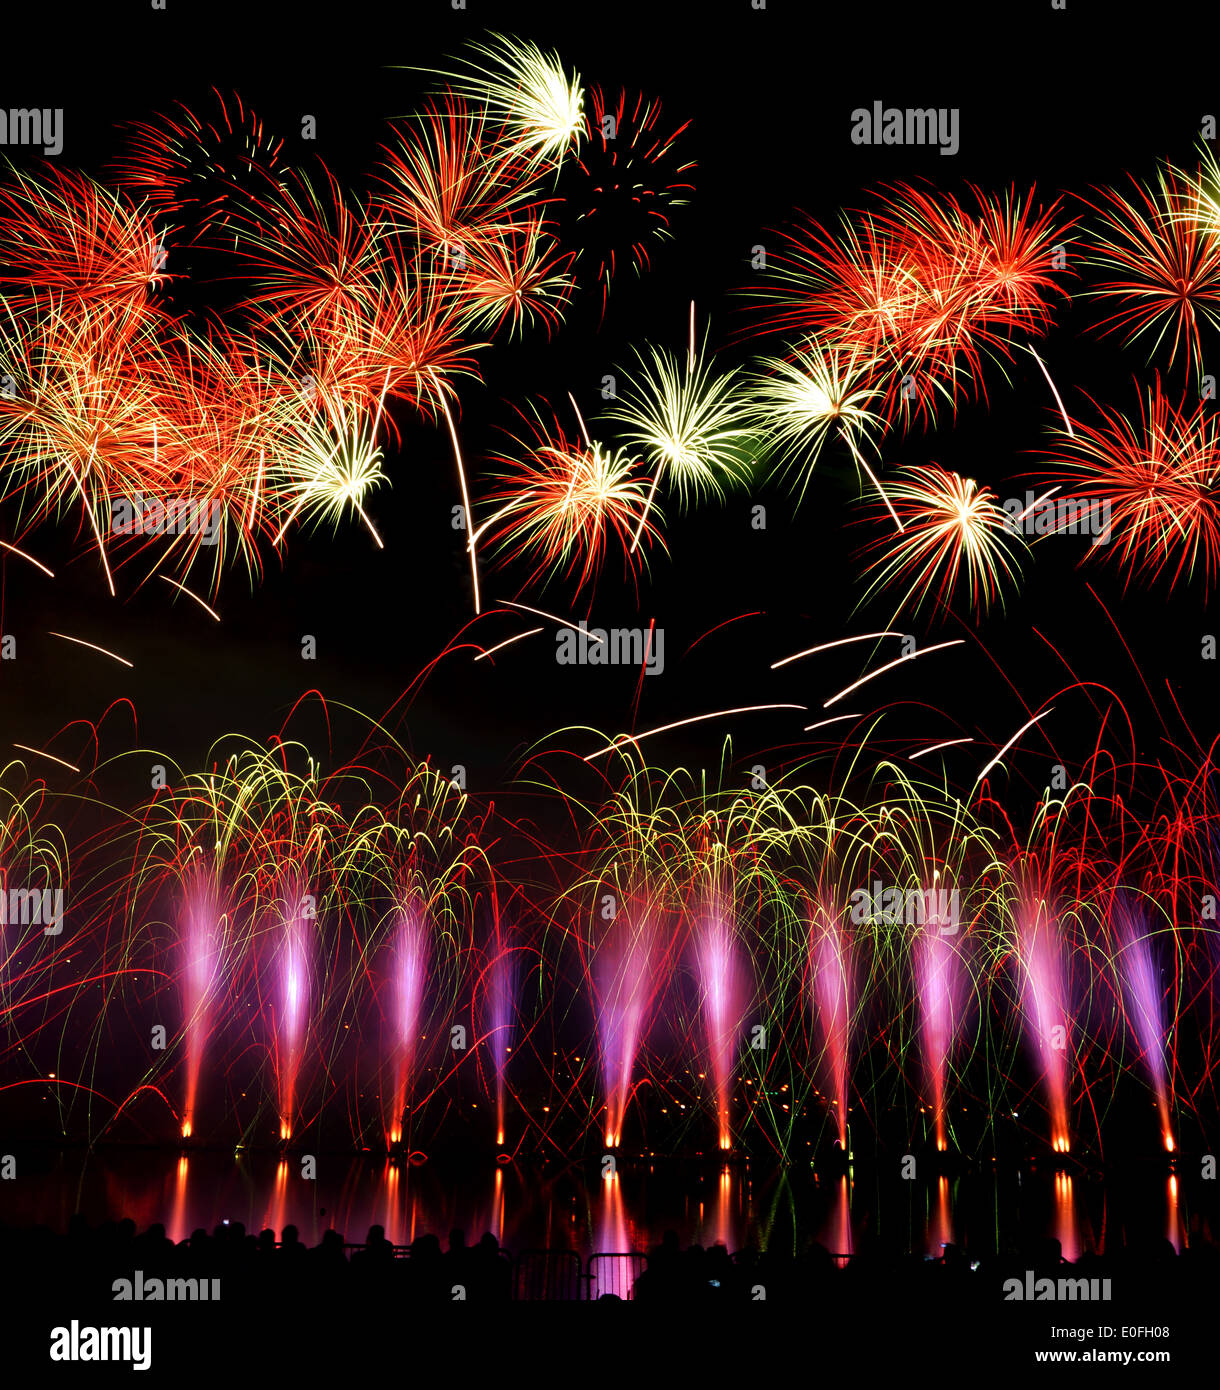 irework fireworks pyrotechnic explosive colorful event celecration show pyrotechnics Festival Quebec, Canada - Stock Image